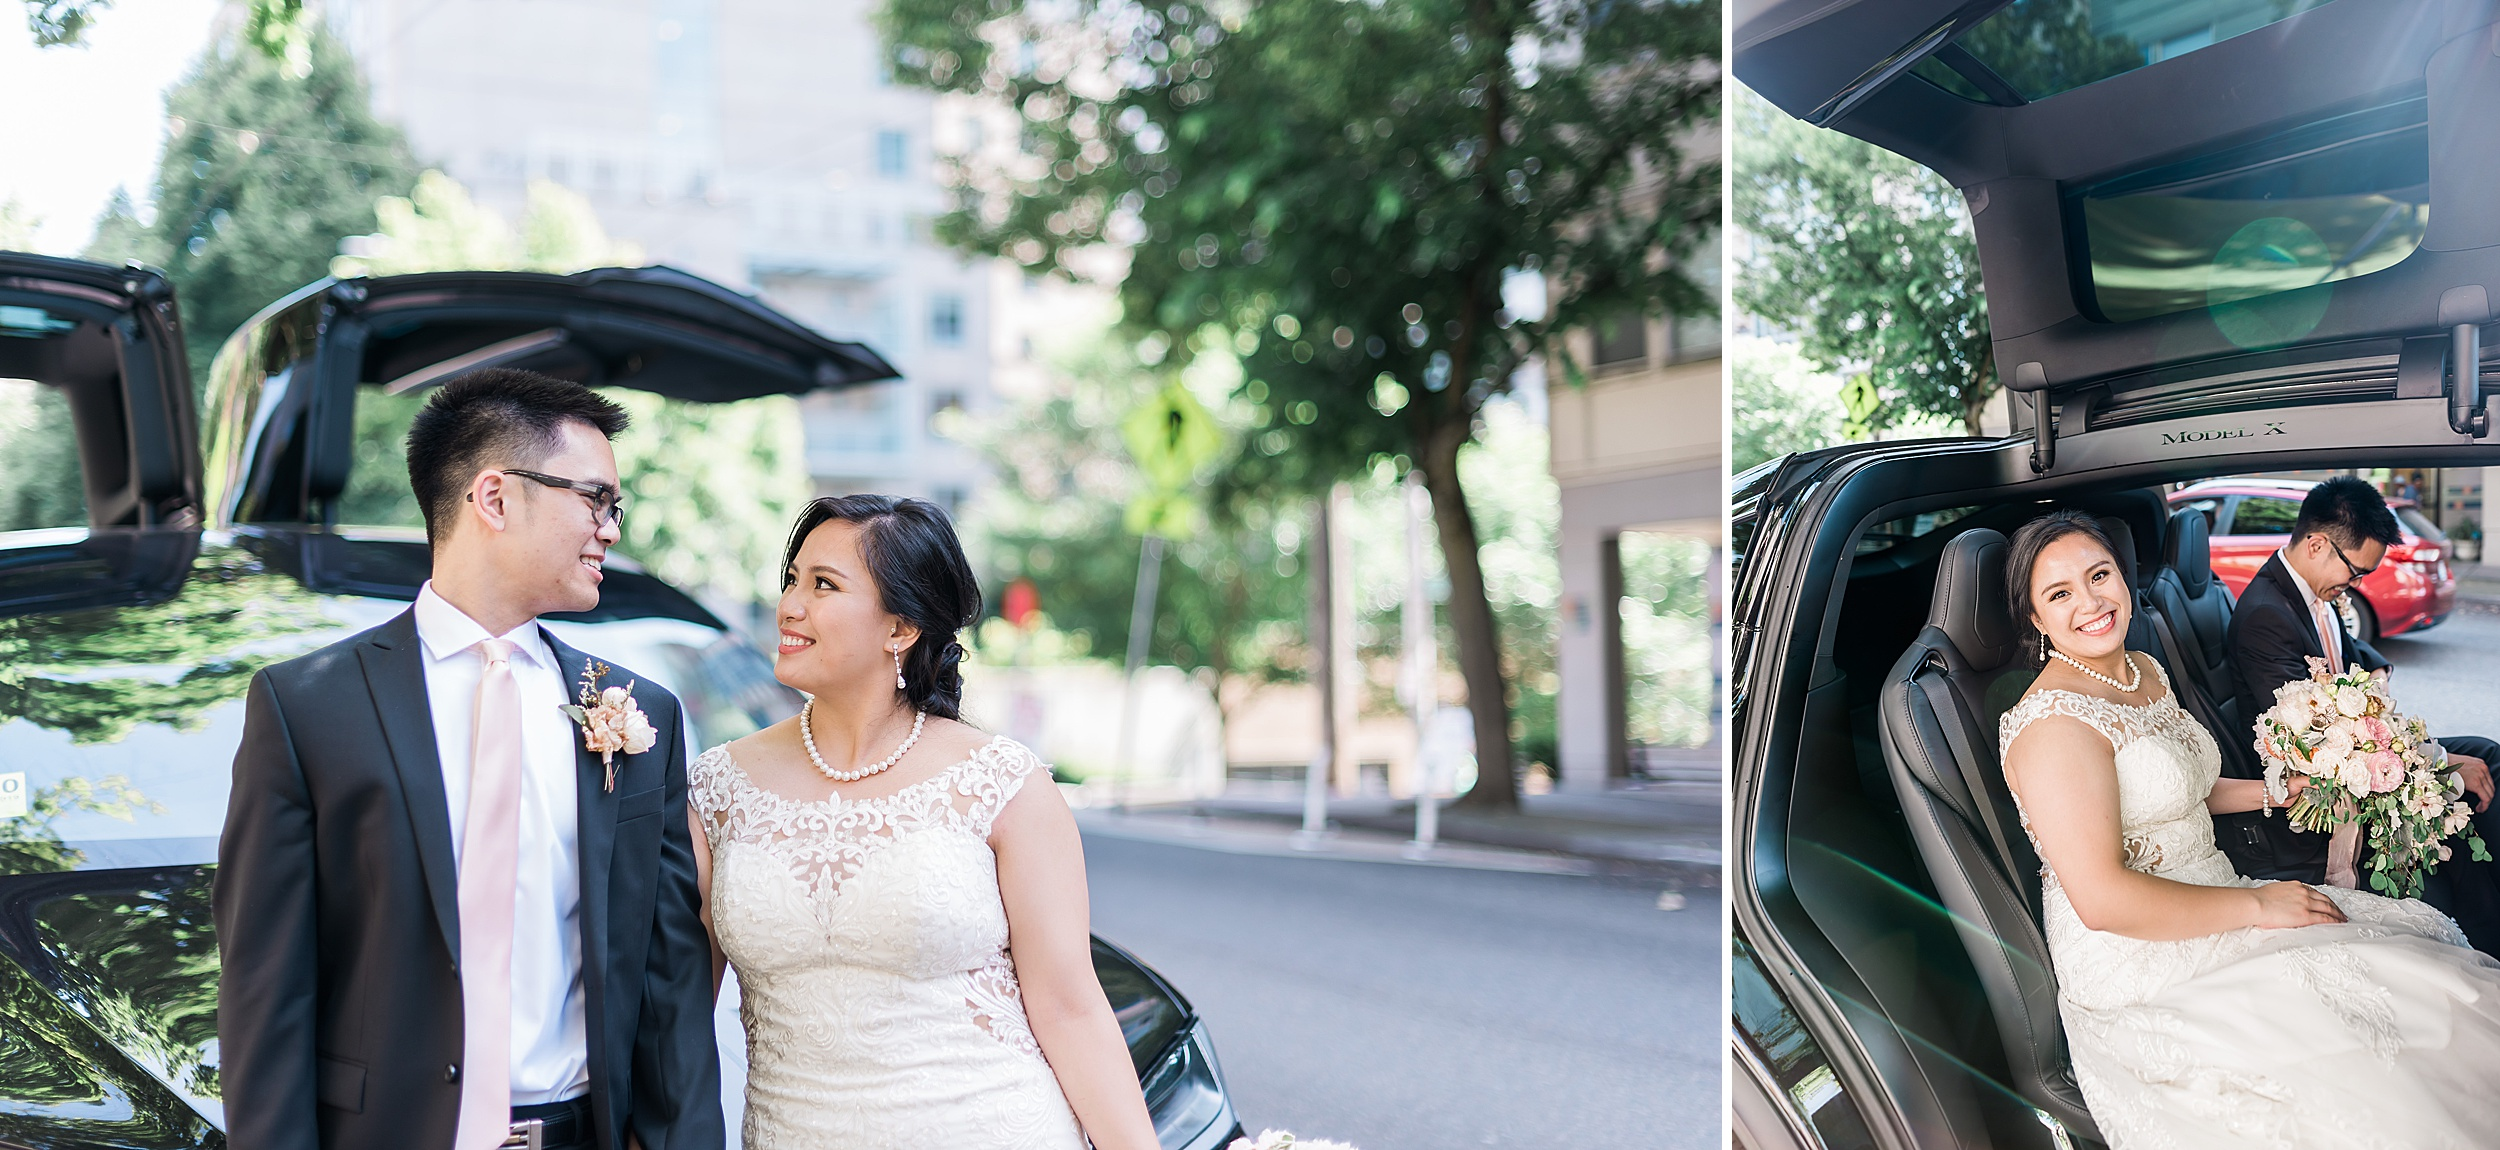 Tesla Model X. Wedding Getaway Car. Woodmark Hotel Wedding | Sea